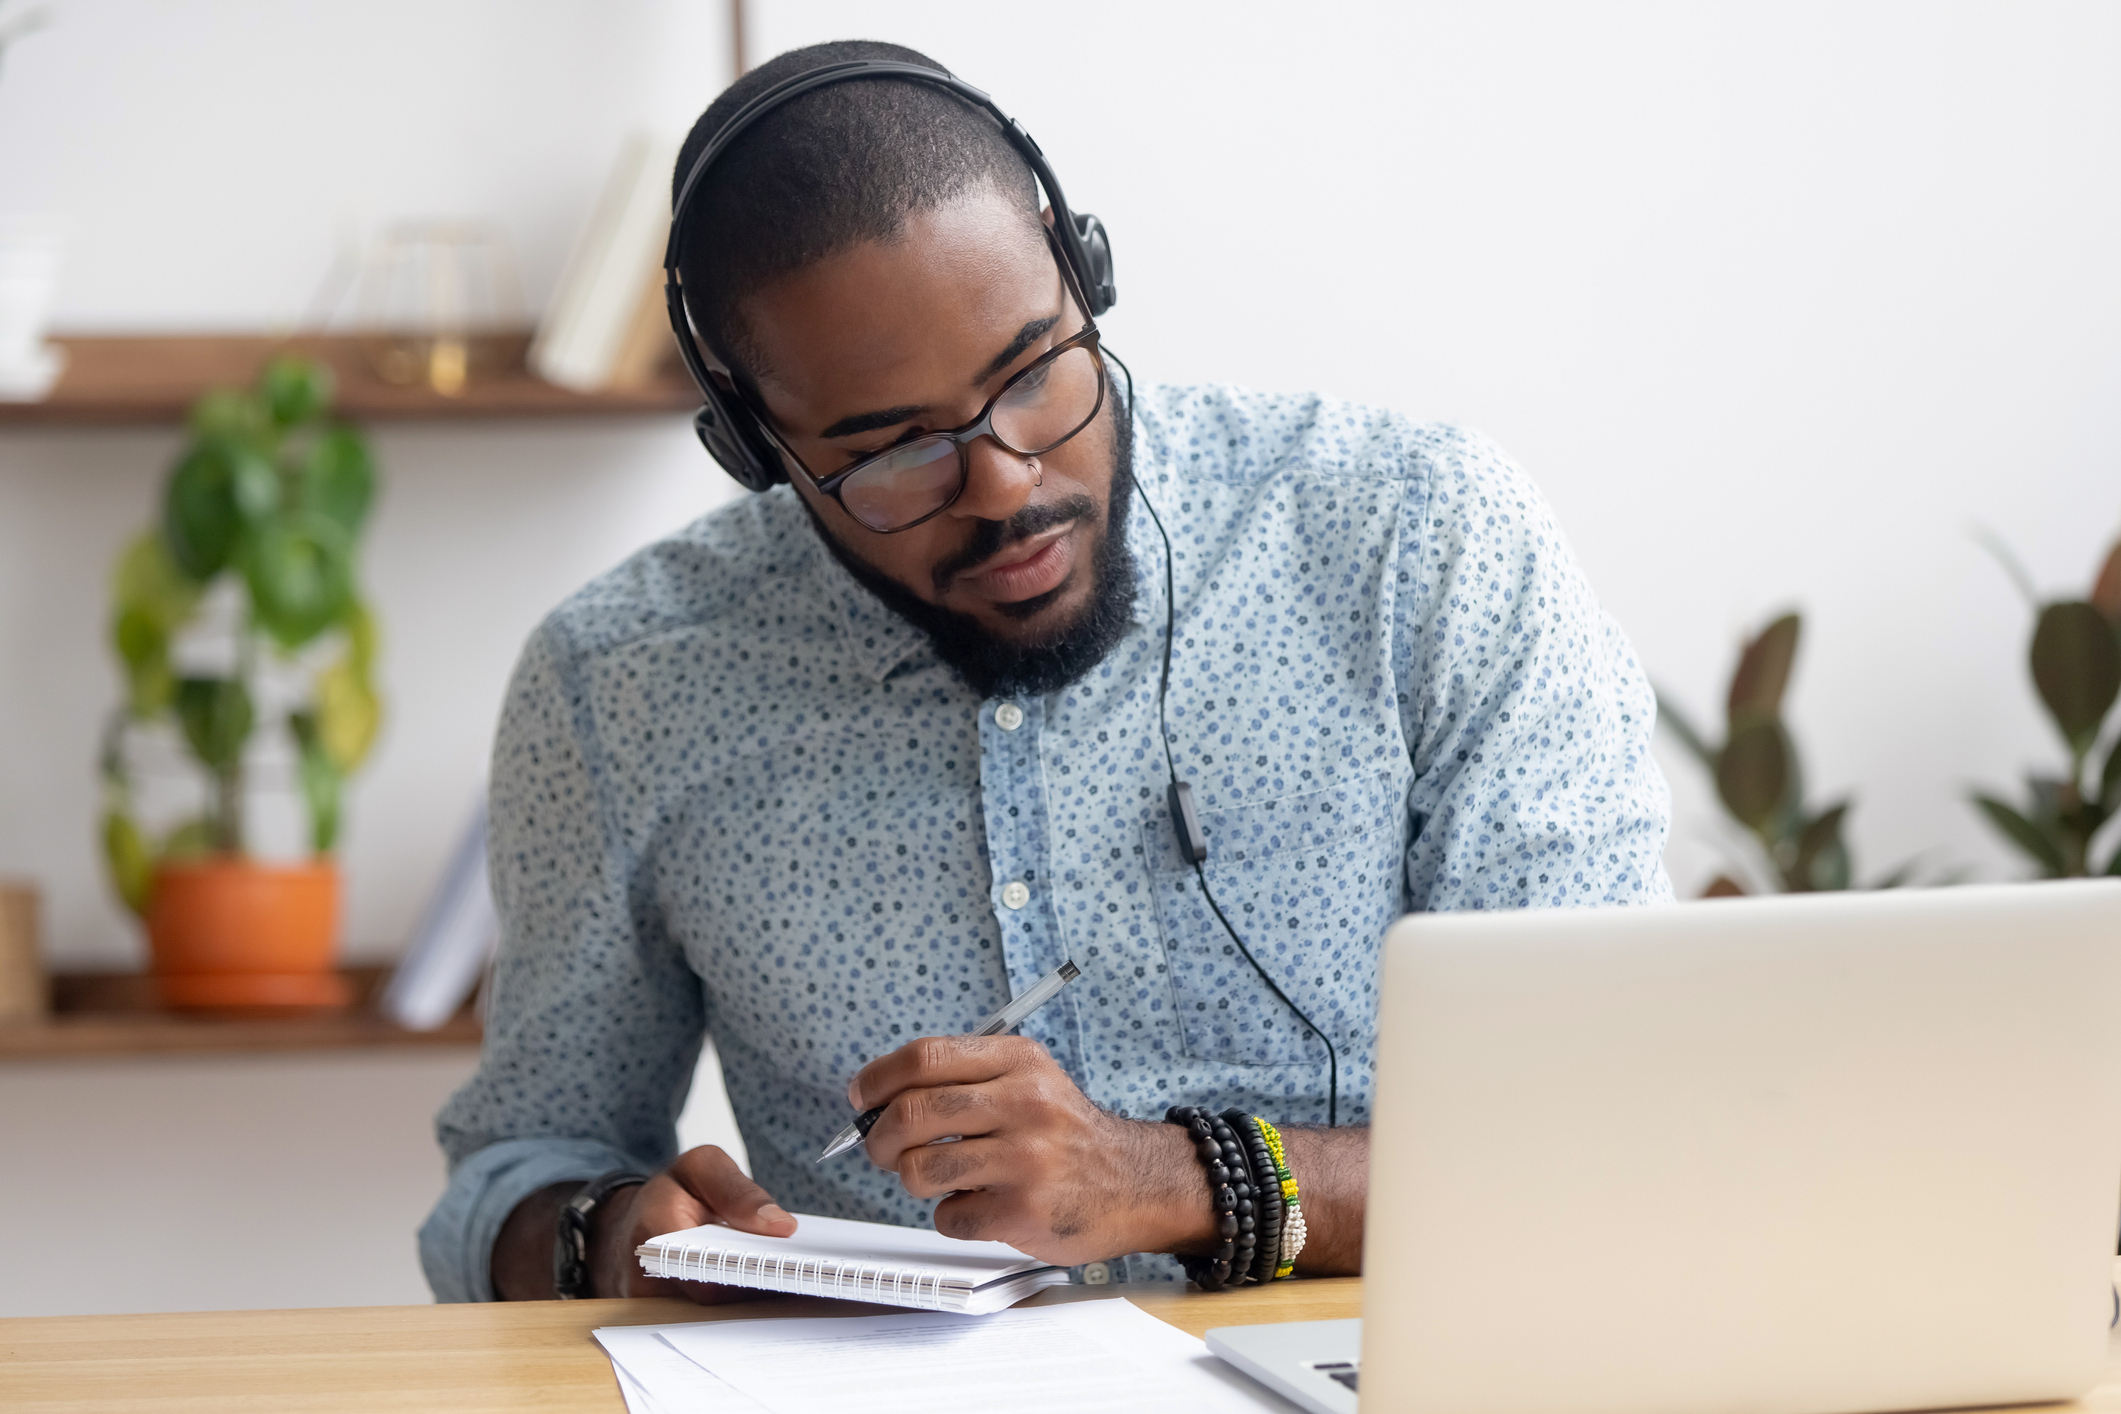 focused young man studies for online class